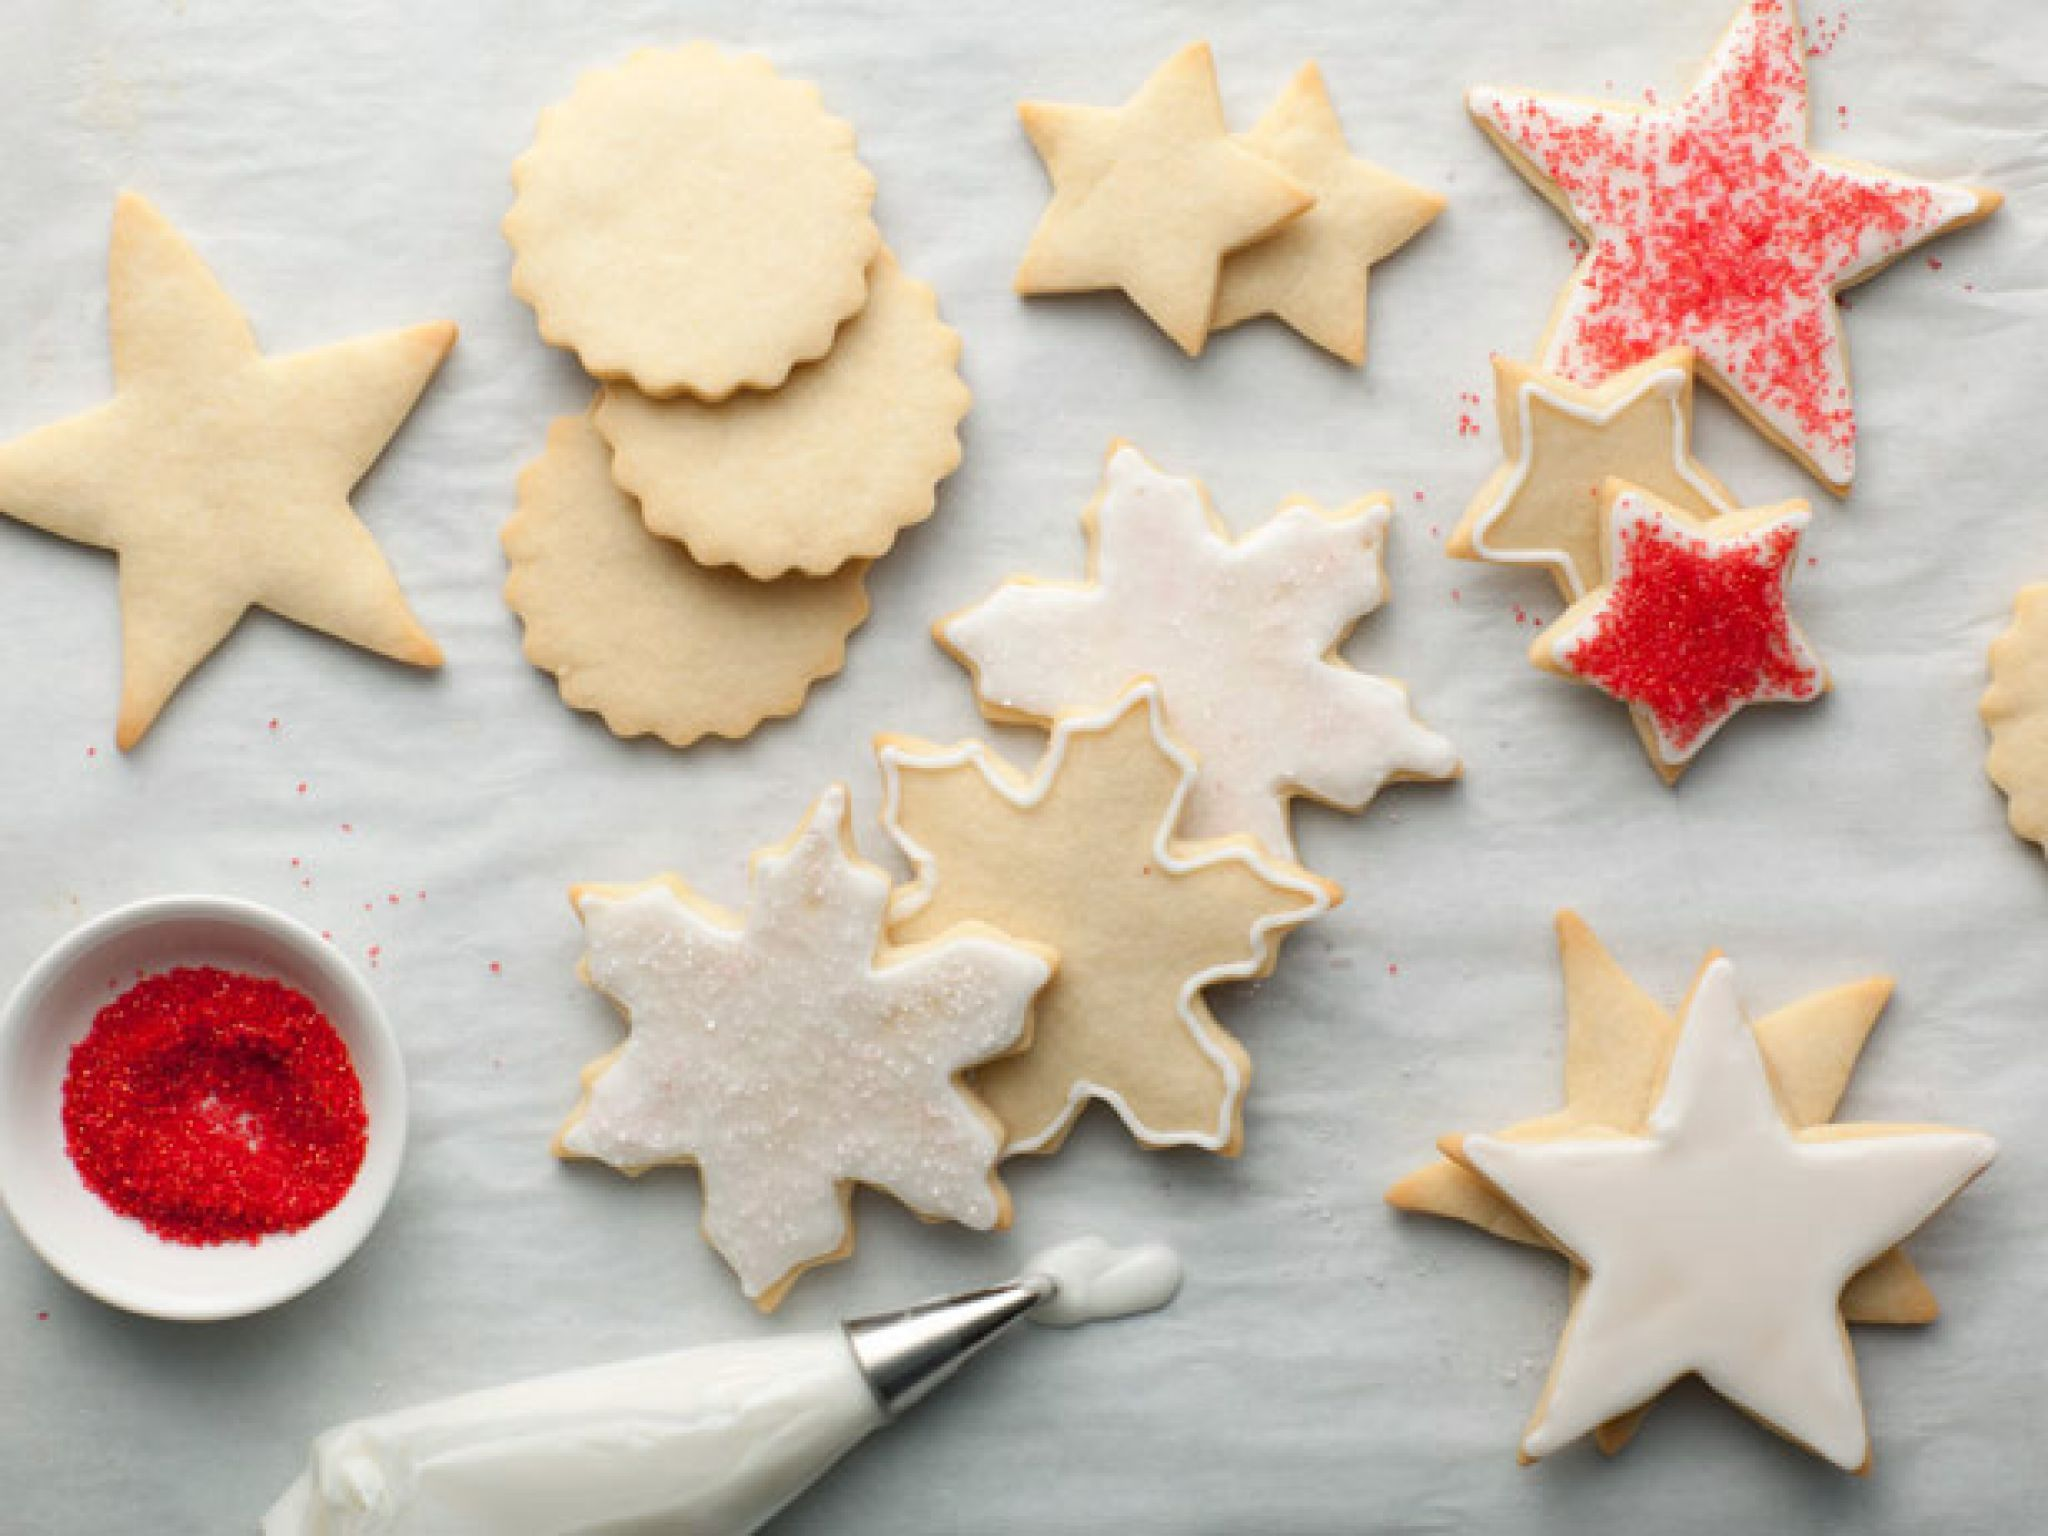 Alton Brown's Top Recipes | Sugar cookies recipe, Cookie recipes ...